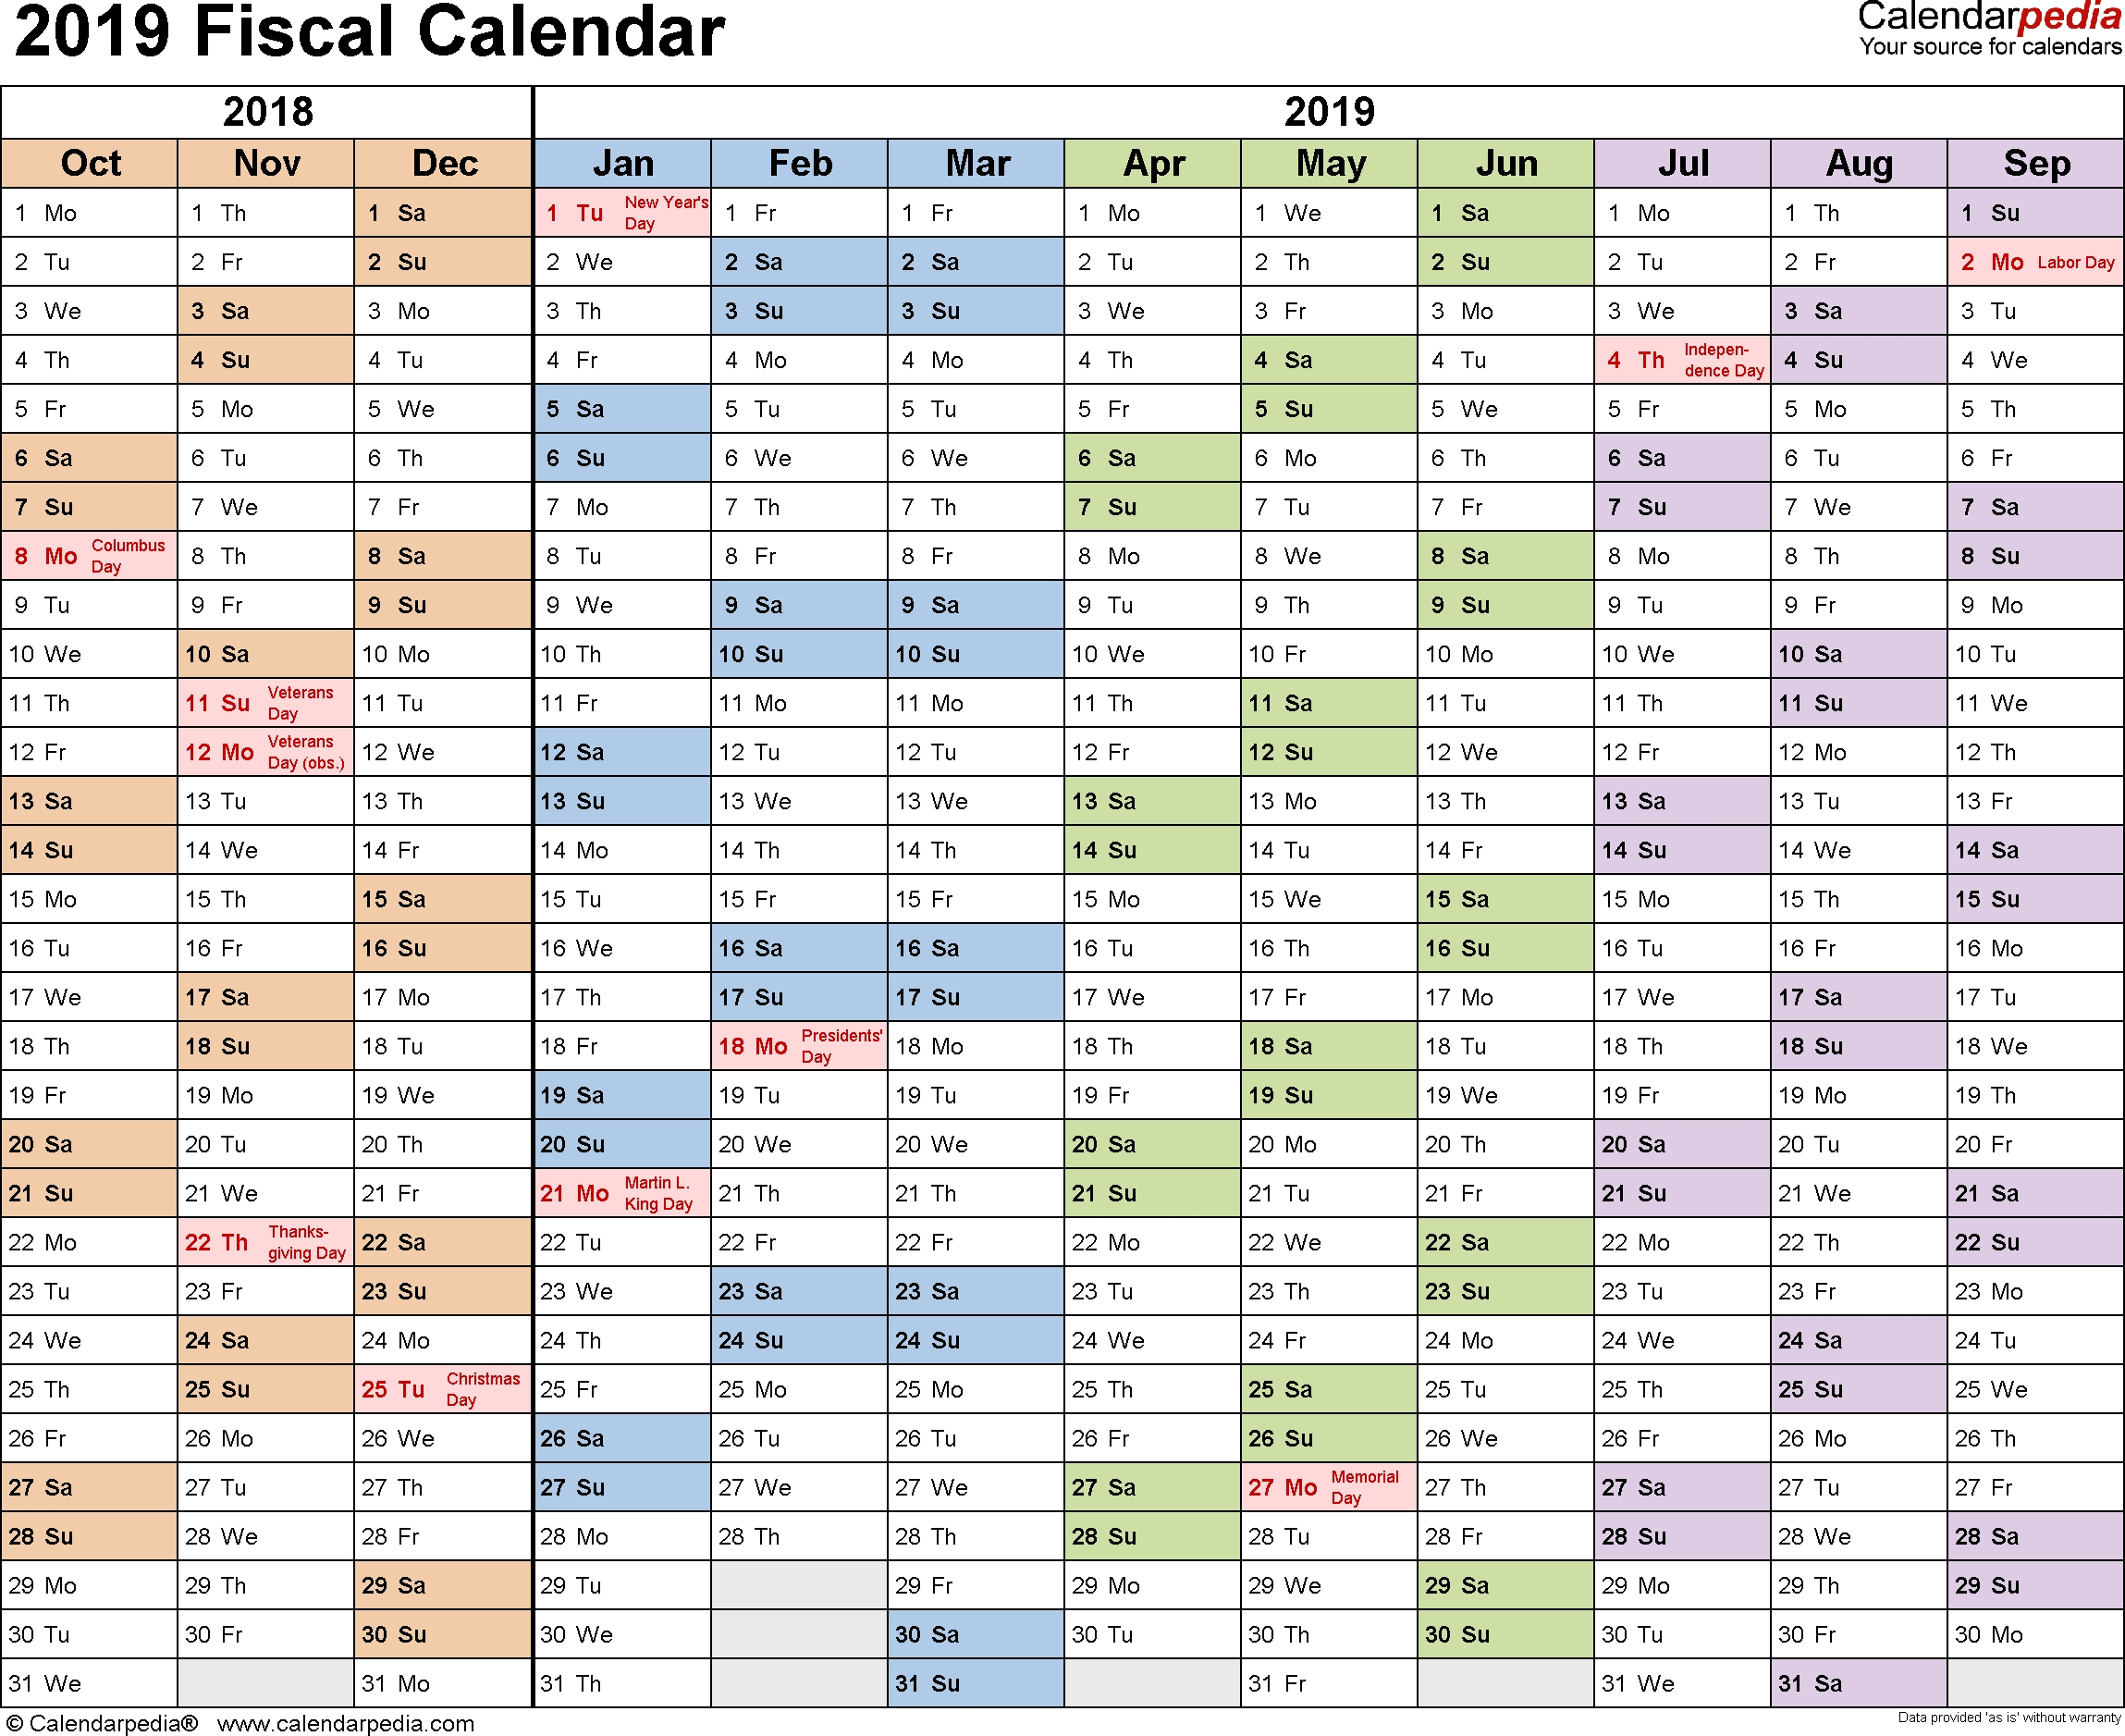 Fiscal Year 2020 Calendar - Colona.rsd7 within 2020 Fiscal Calendar To Print